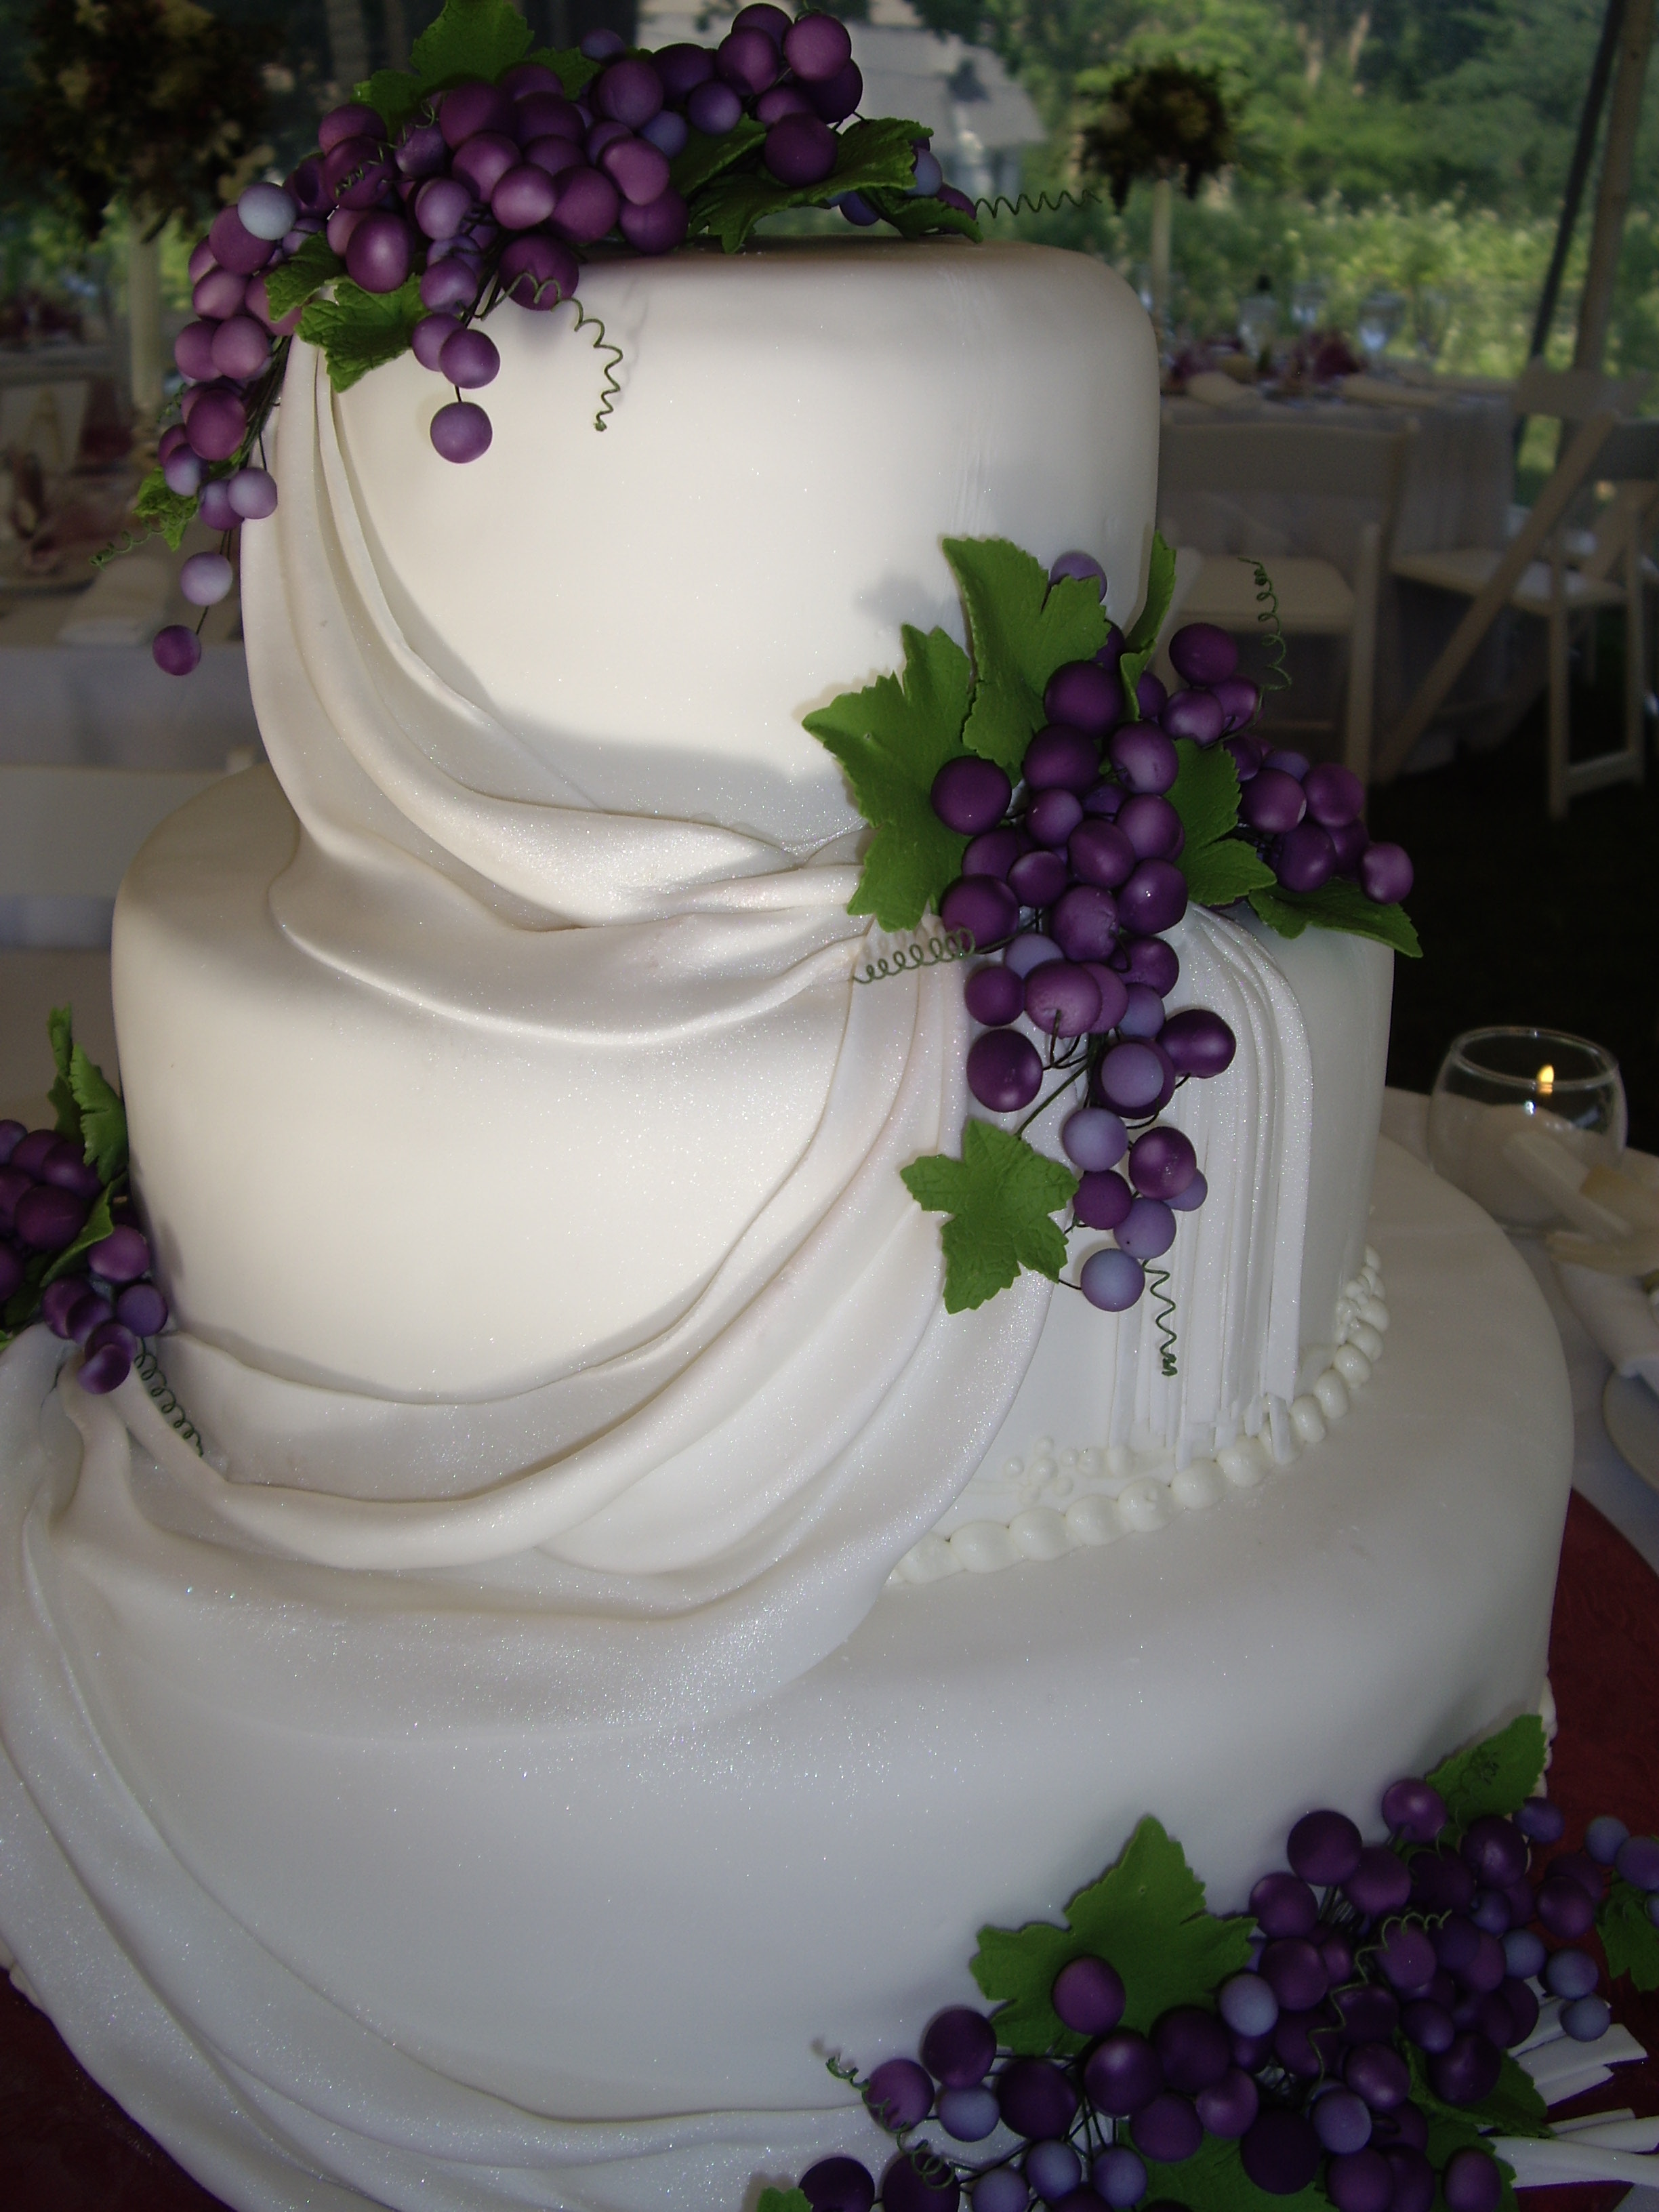 The Cake Gallery Wedding Cakes Our Unique Style And Uncomprimising Quality Will Help Sweeten Your Special Day In A Way You Can Only Get Here At